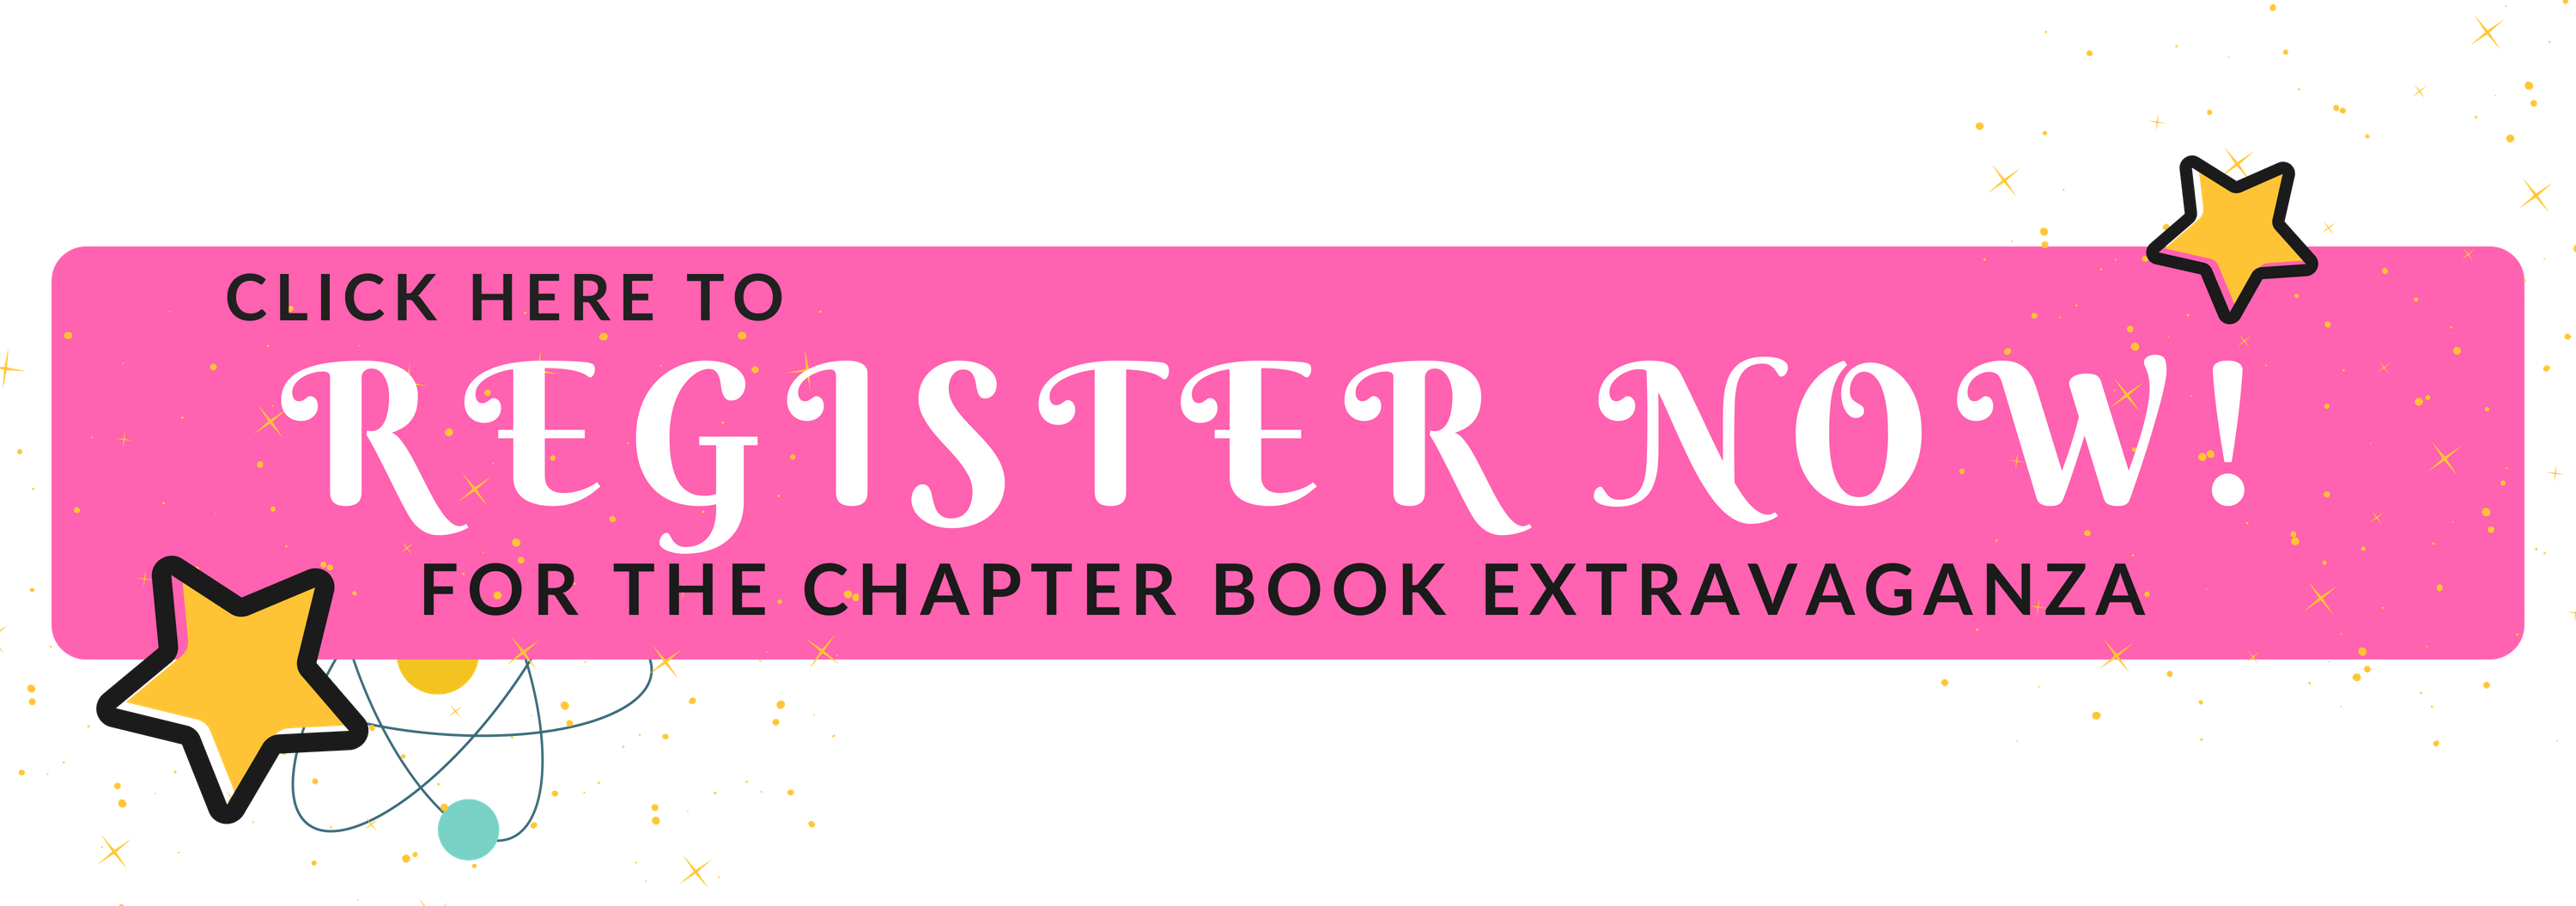 Register Now for the Chapter Book Extravagenza at Children's Book Academy